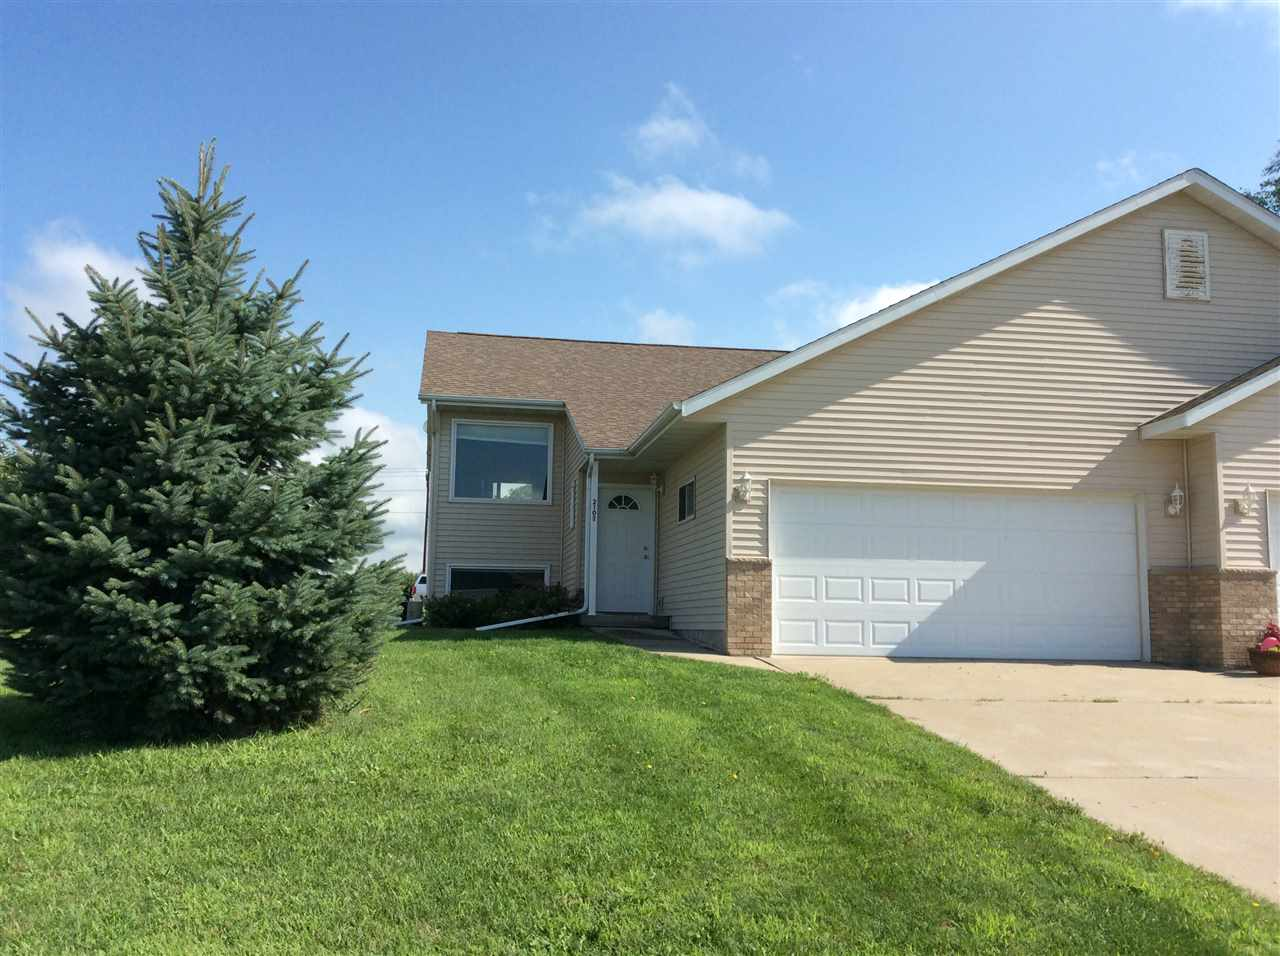 2107 NIGHTHAWK LN, Sauk City, WI 53583